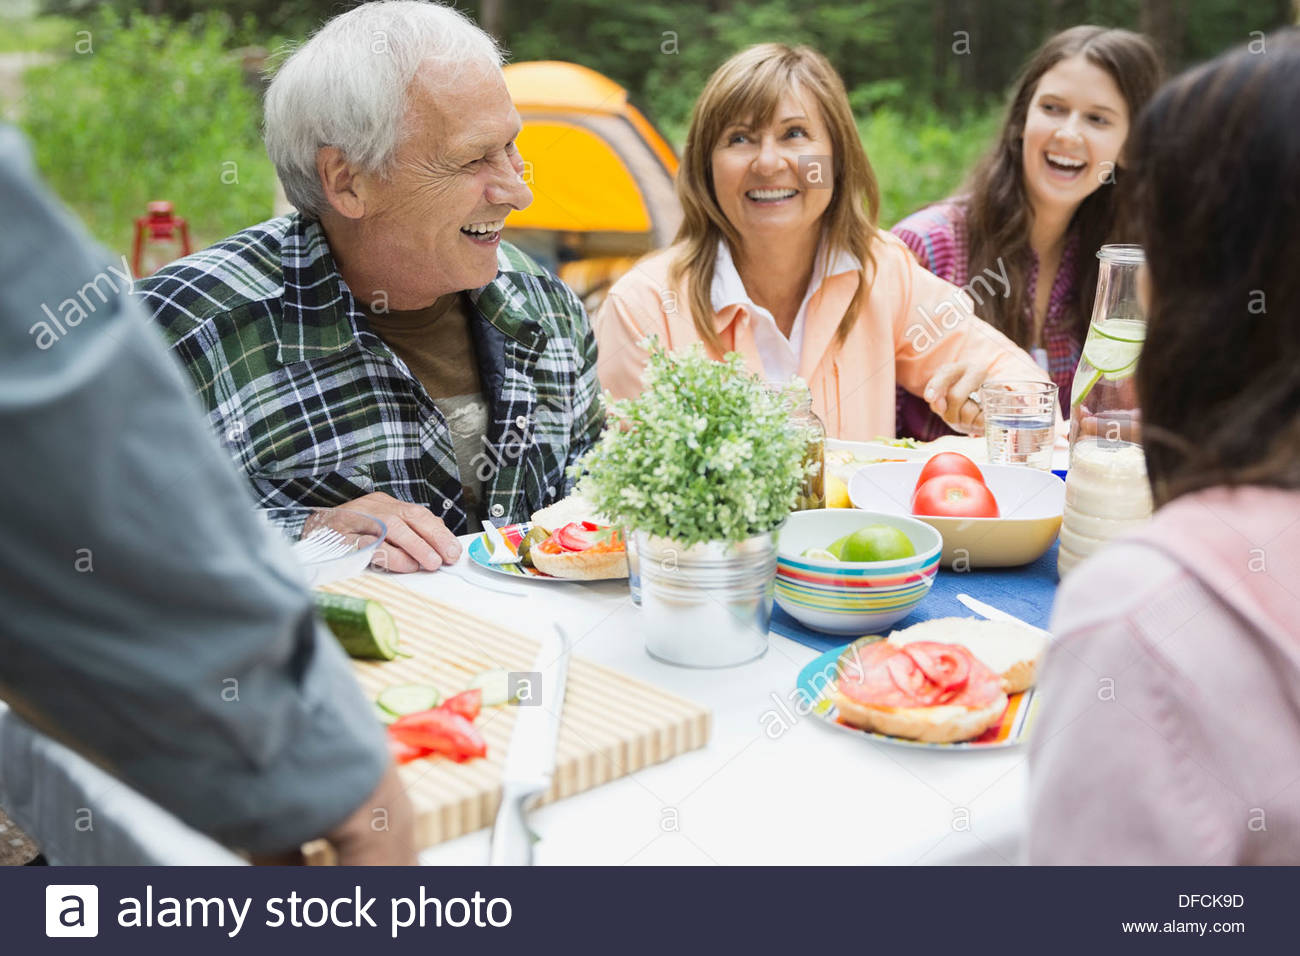 Happy senior couple enjoying meal with family at campsite Stock Photo